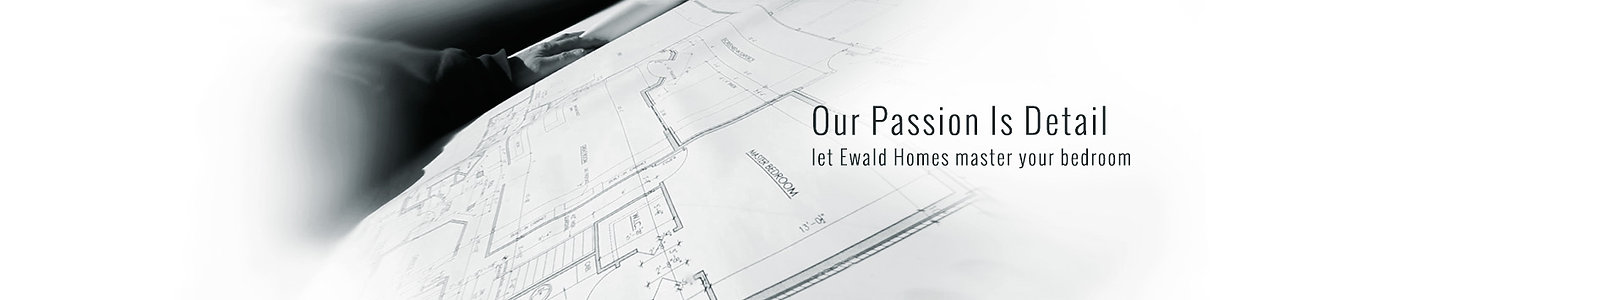 CUSTOM HOME BUILDERS, CHATHAM KENT - EWALD HOMES PASSION